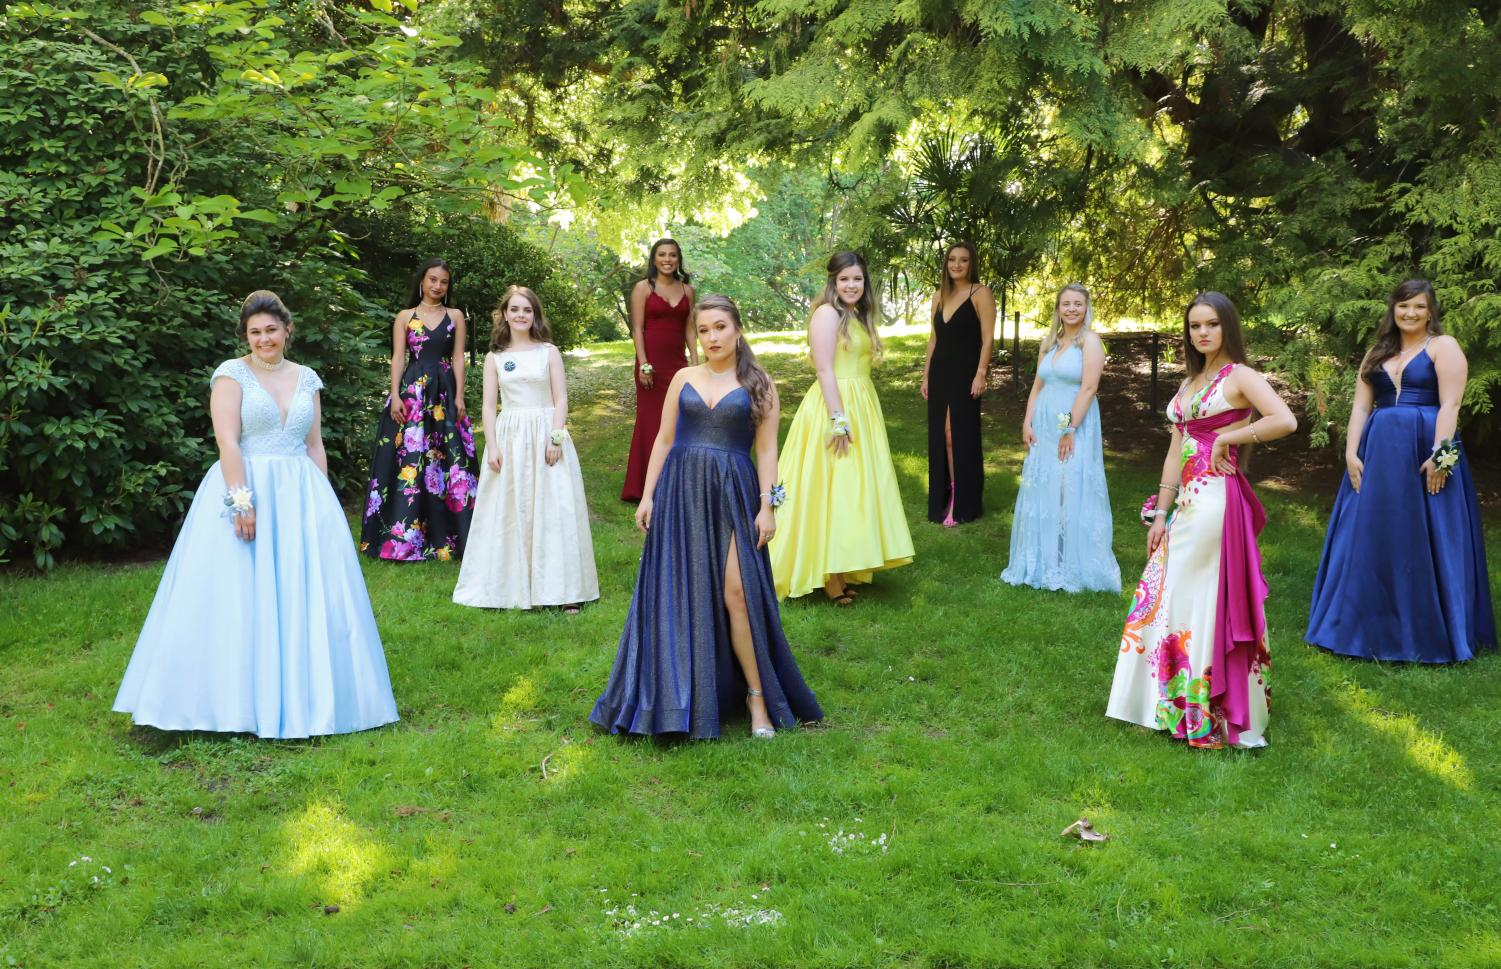 A group of girls pose in their unique dresses for prom pictures.